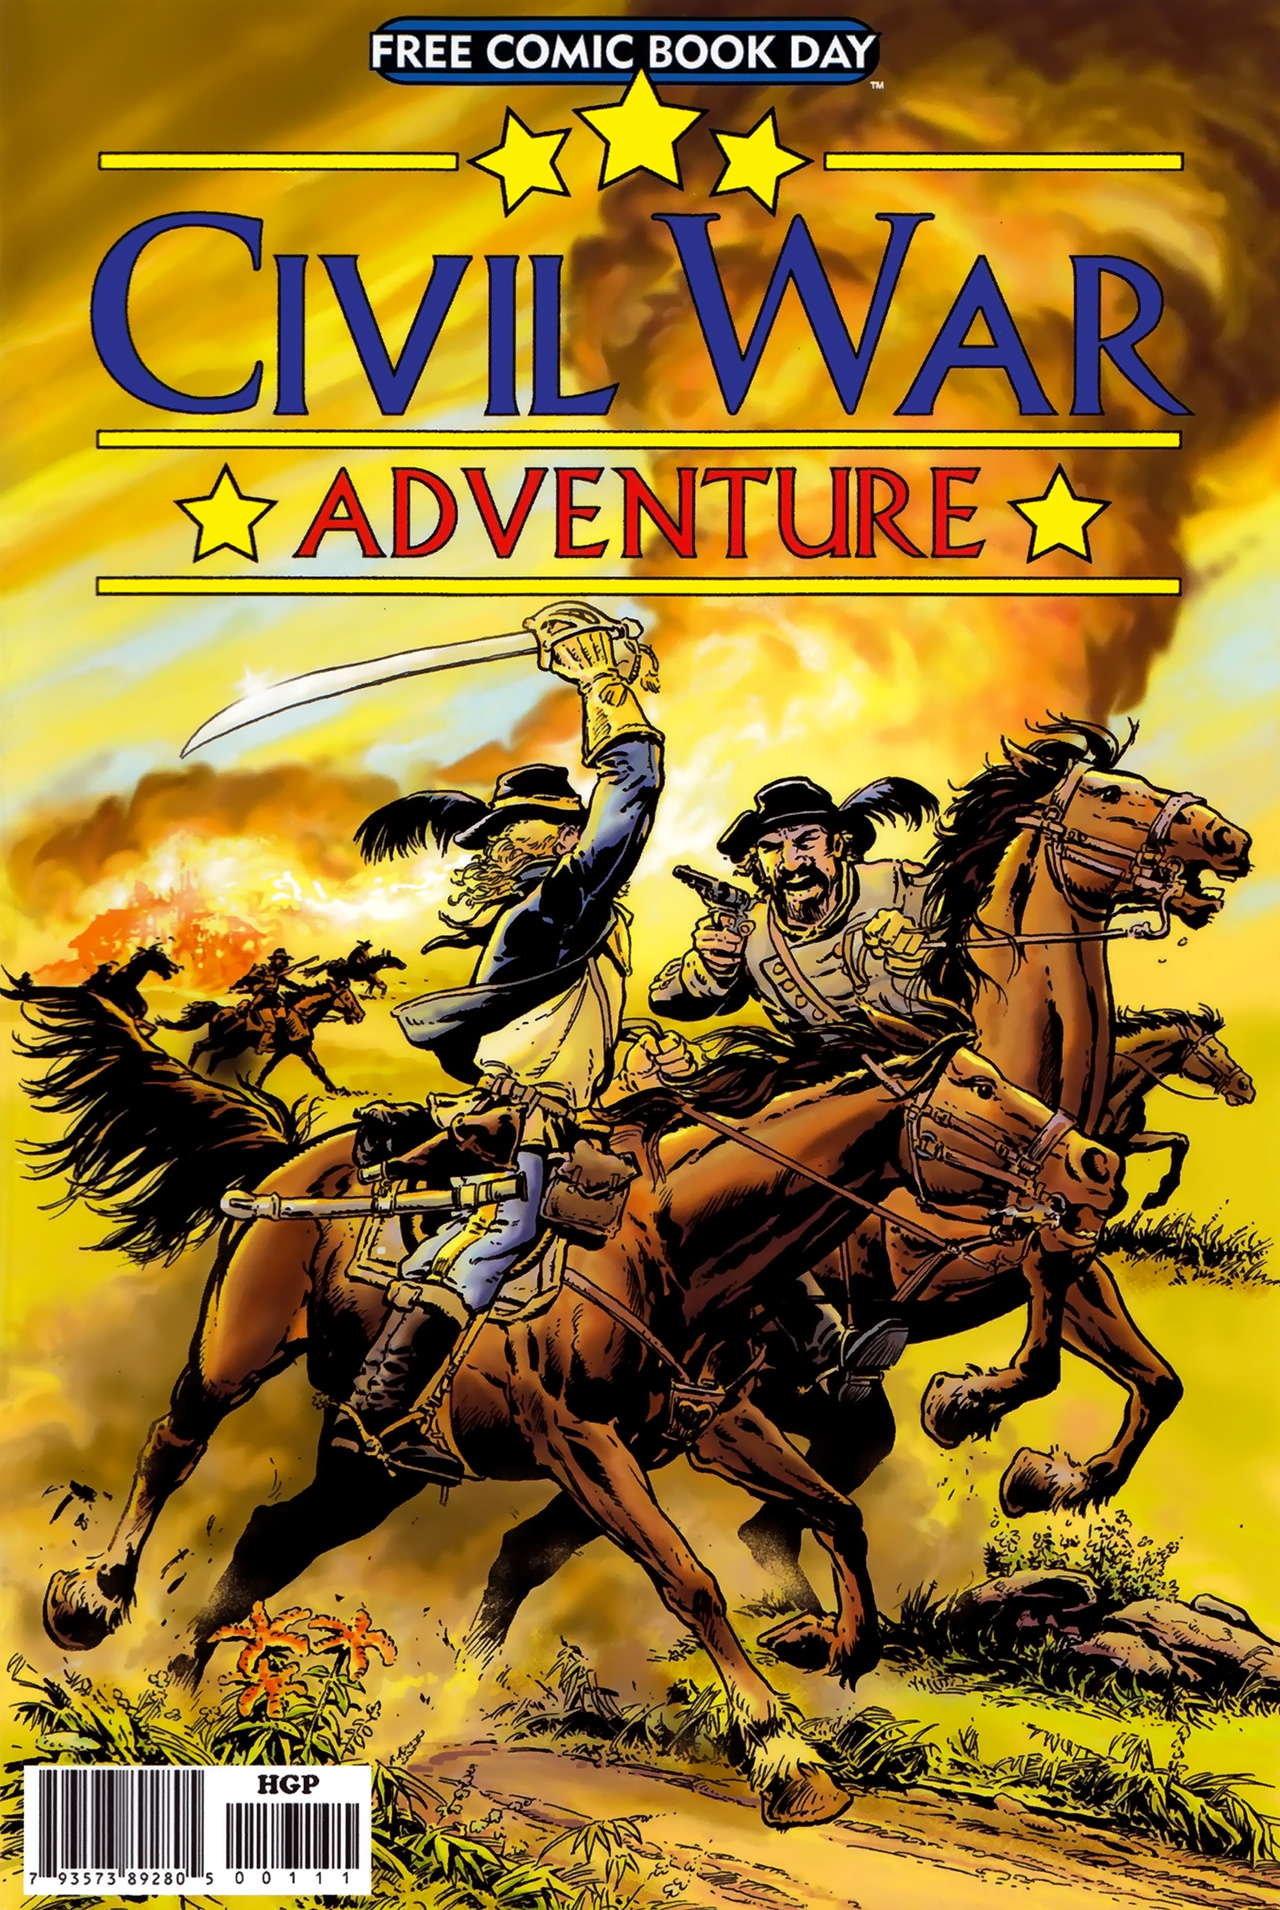 Civil War Adventure FCBD 2011 Civil War Adventure FCBD 2011.jpg